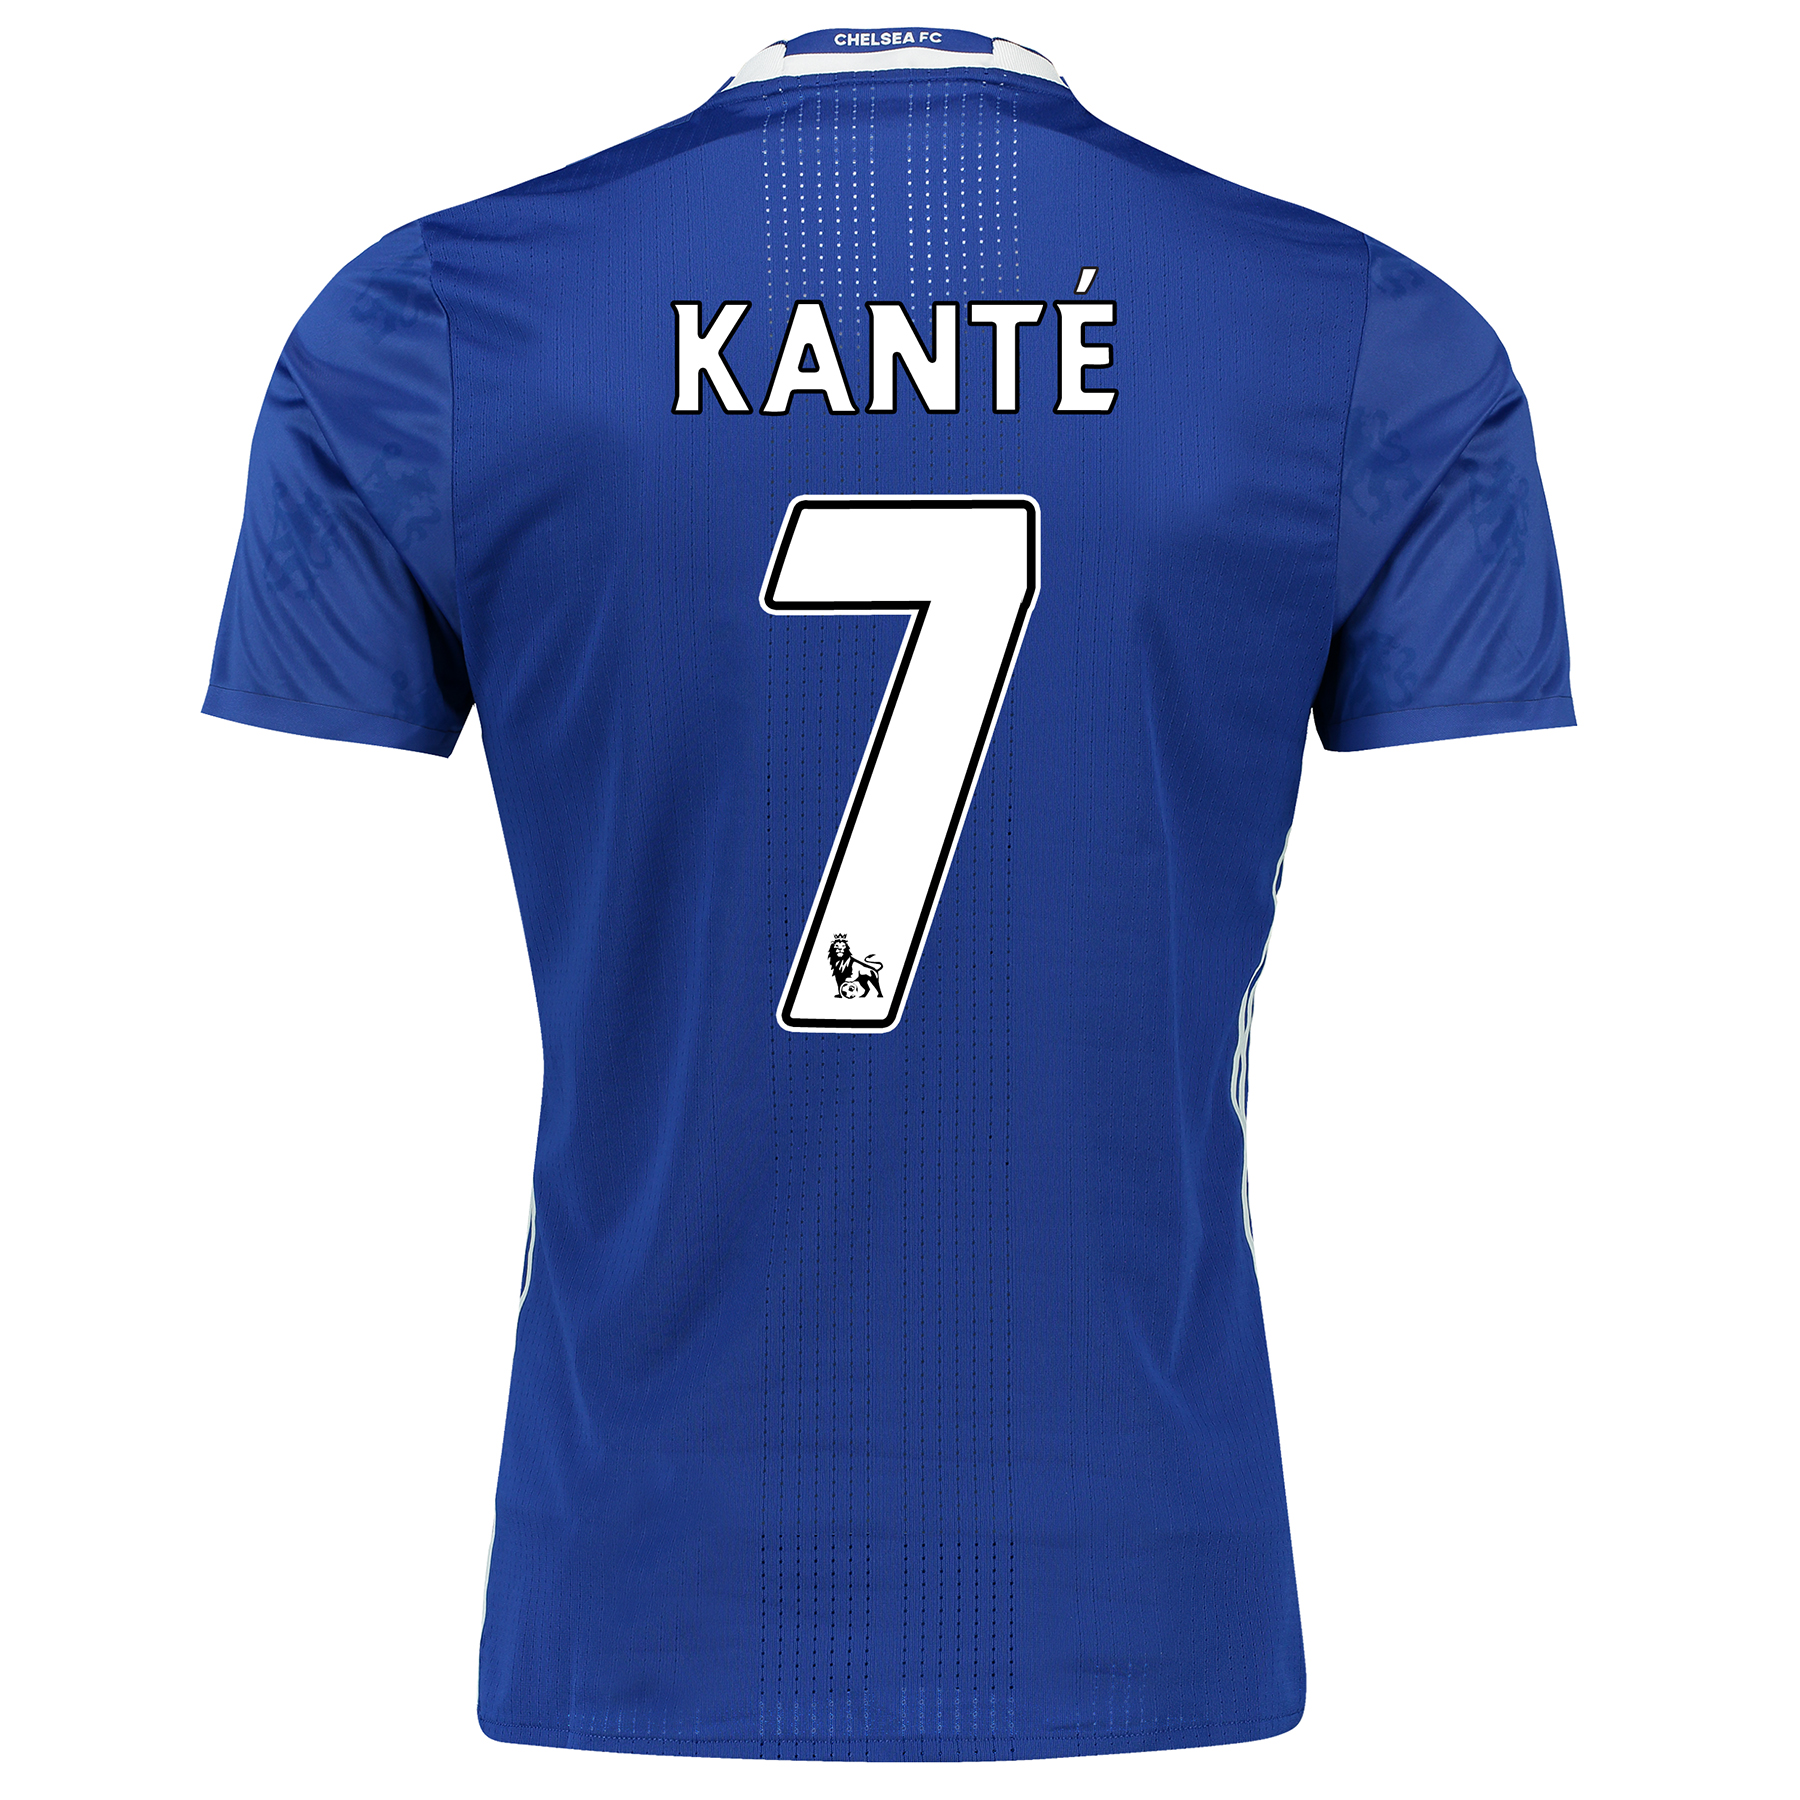 Shop Kanté Printed Shirts